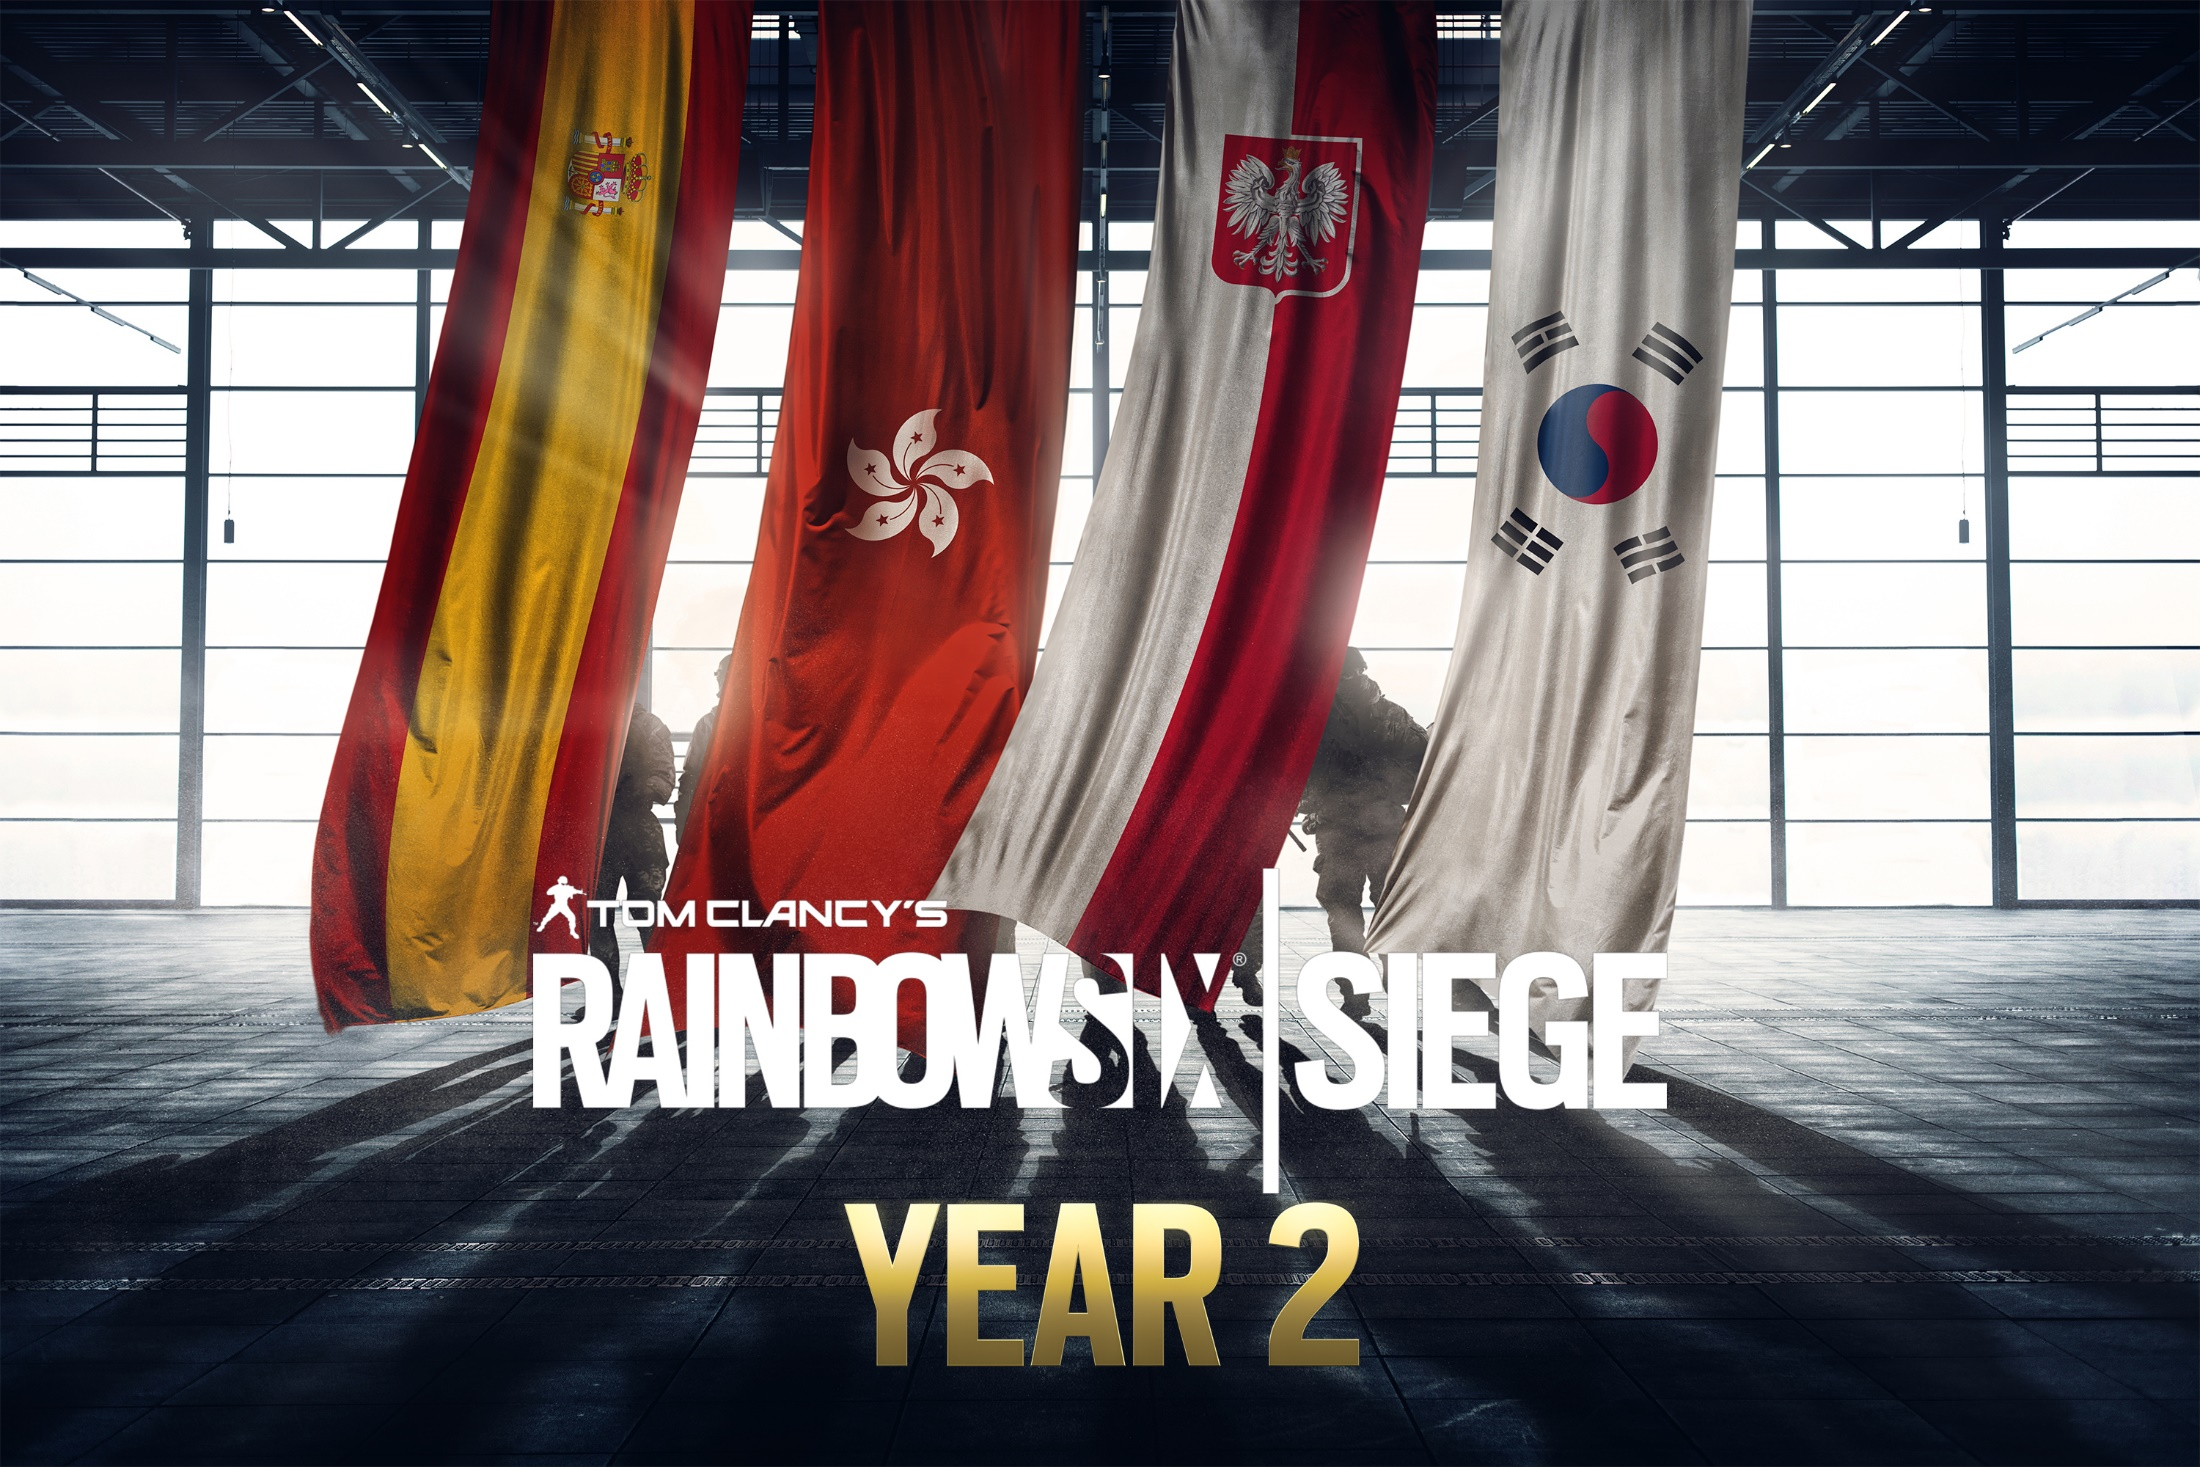 Ya disponible el pase de temporada del año 2 de Rainbow Six Siege